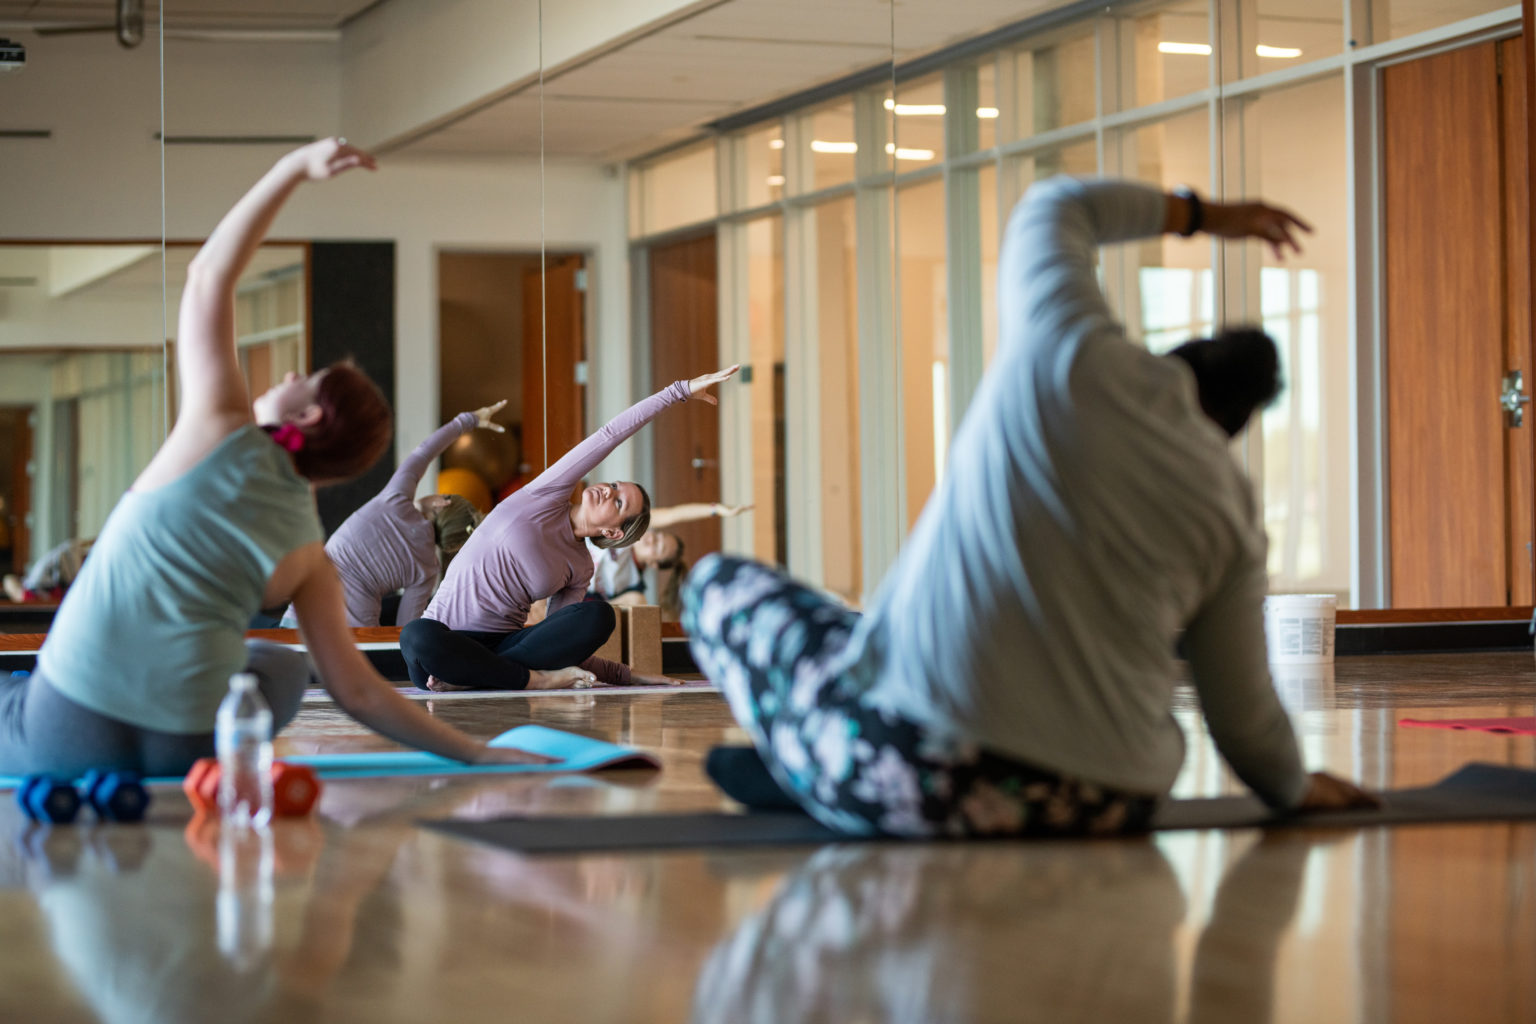 yoga students practicing yoga in studio.